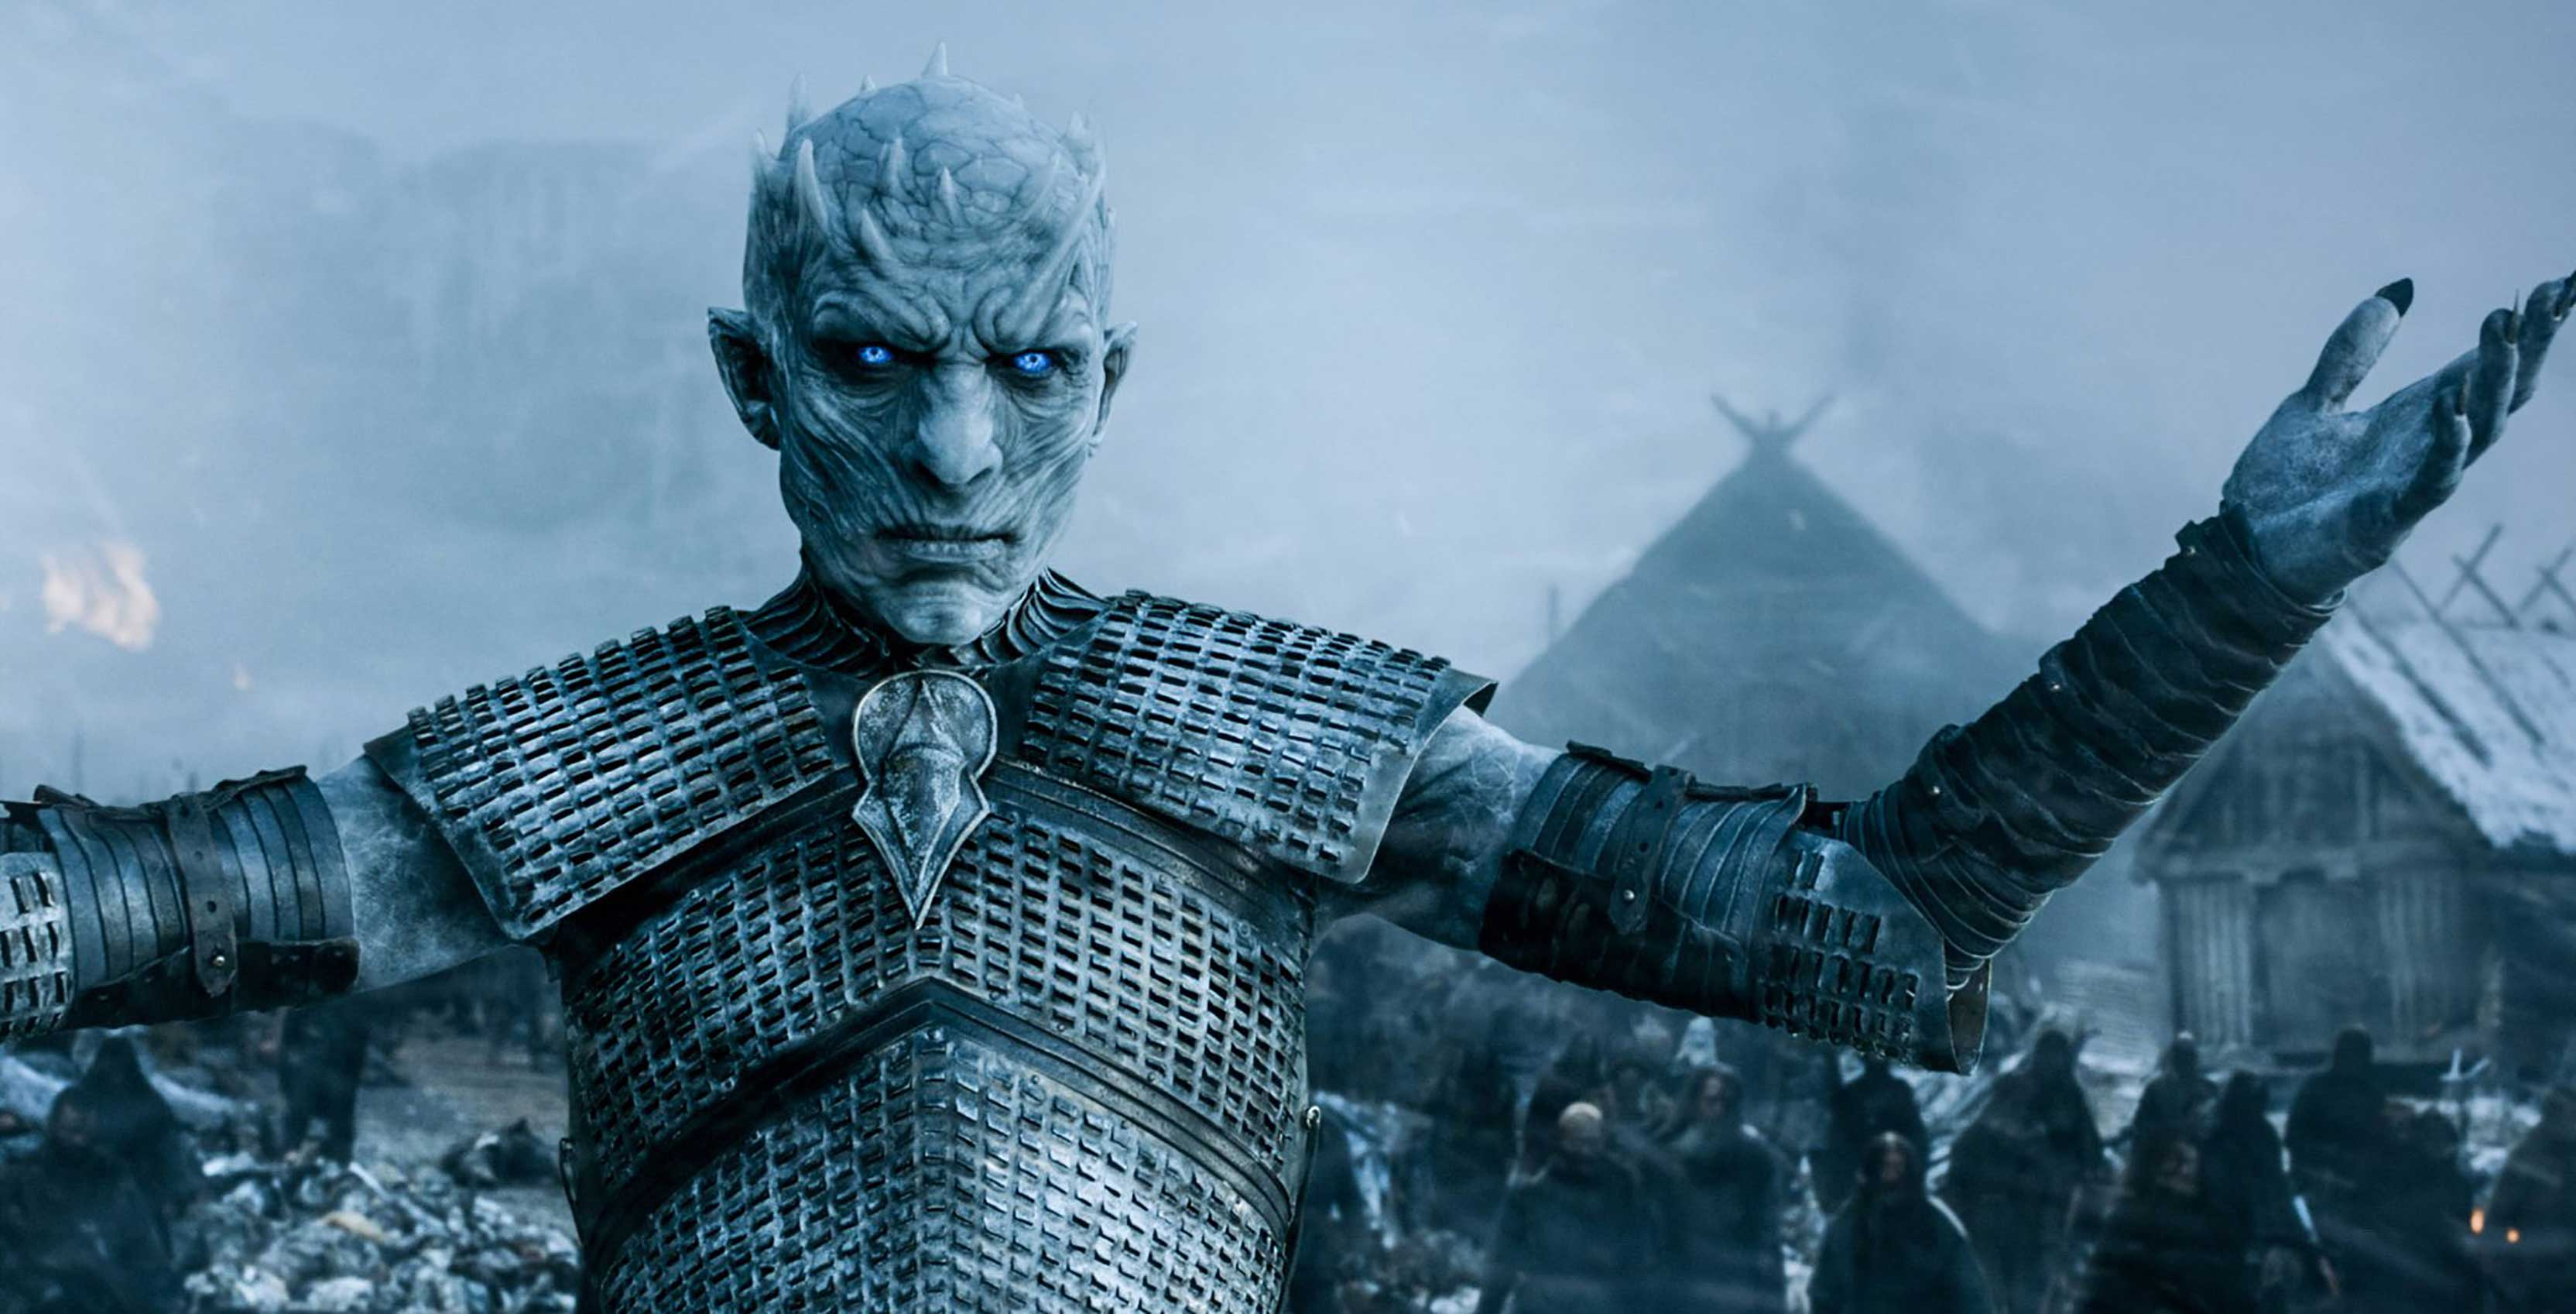 Game of Thrones fights back against piracy, spoilers